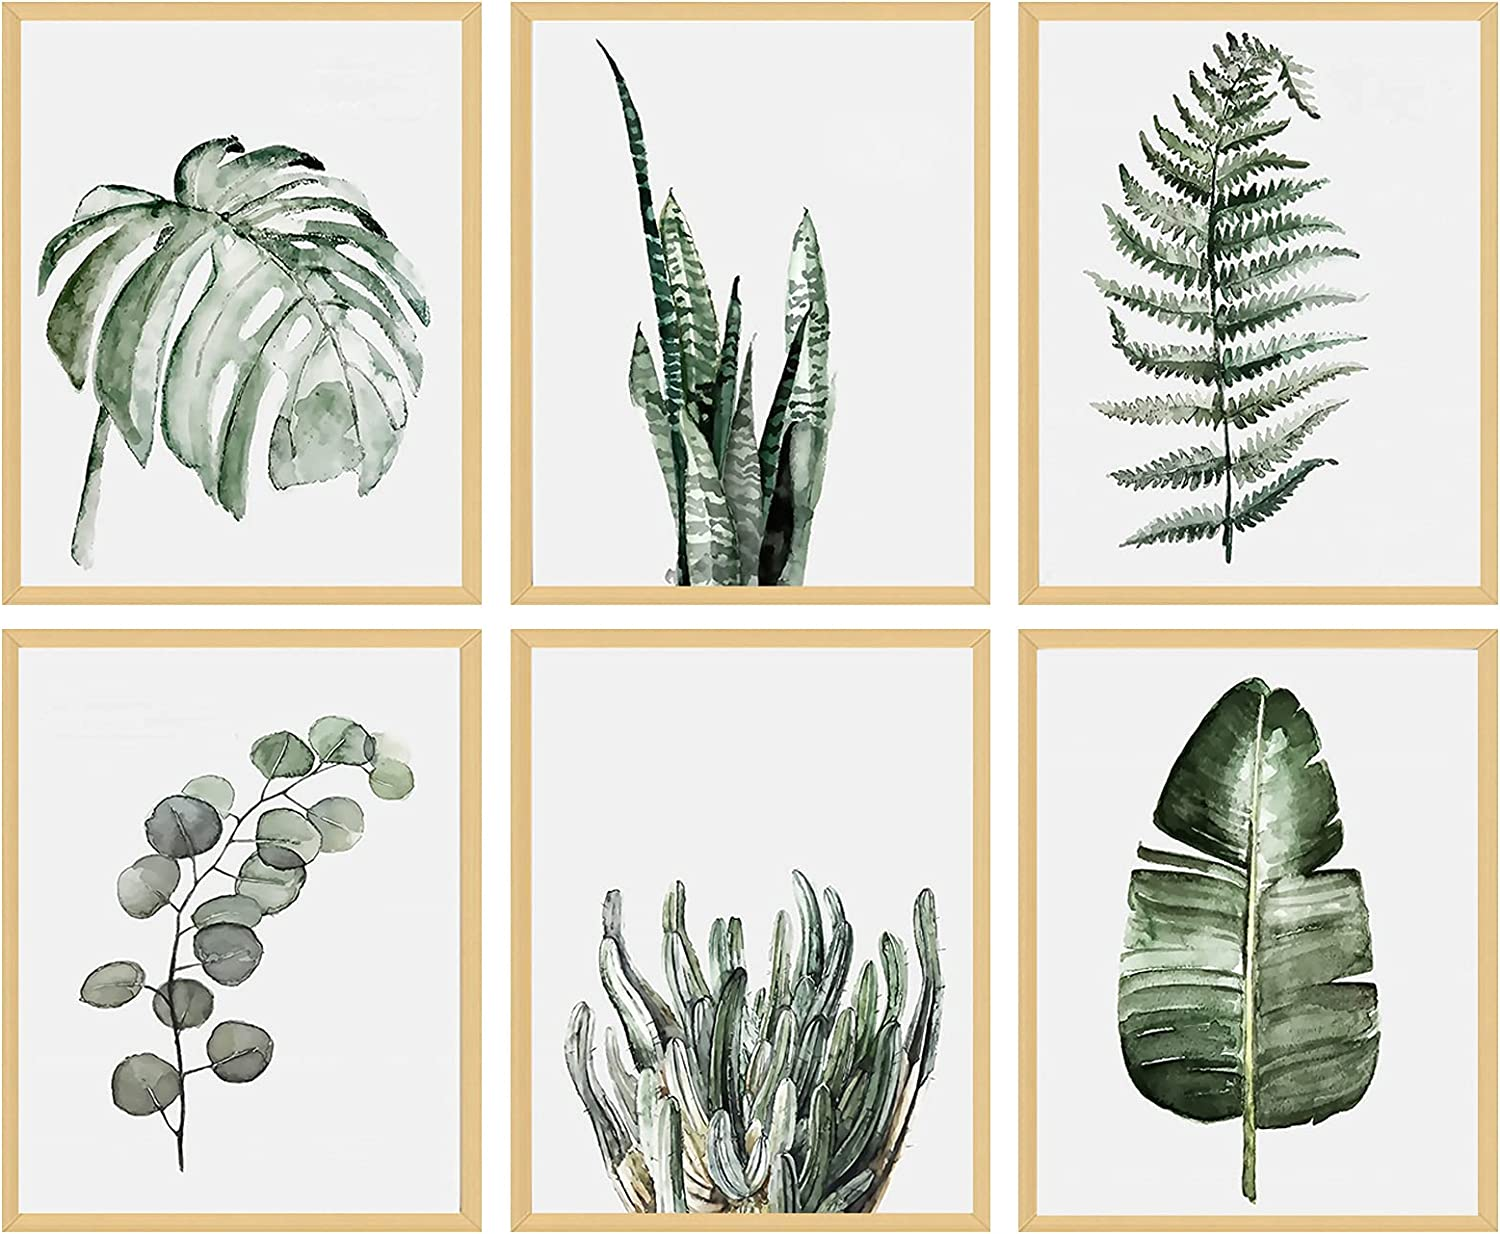 Green Leaf Picture Wall Art - Bathroom Kitchen Wall Decor Simple Life Tropical Plants Canvas Paintings Nature Palm Banana Monstera Botanical Prints Contemporary Minimalist Posters Unframed 8x10 inches